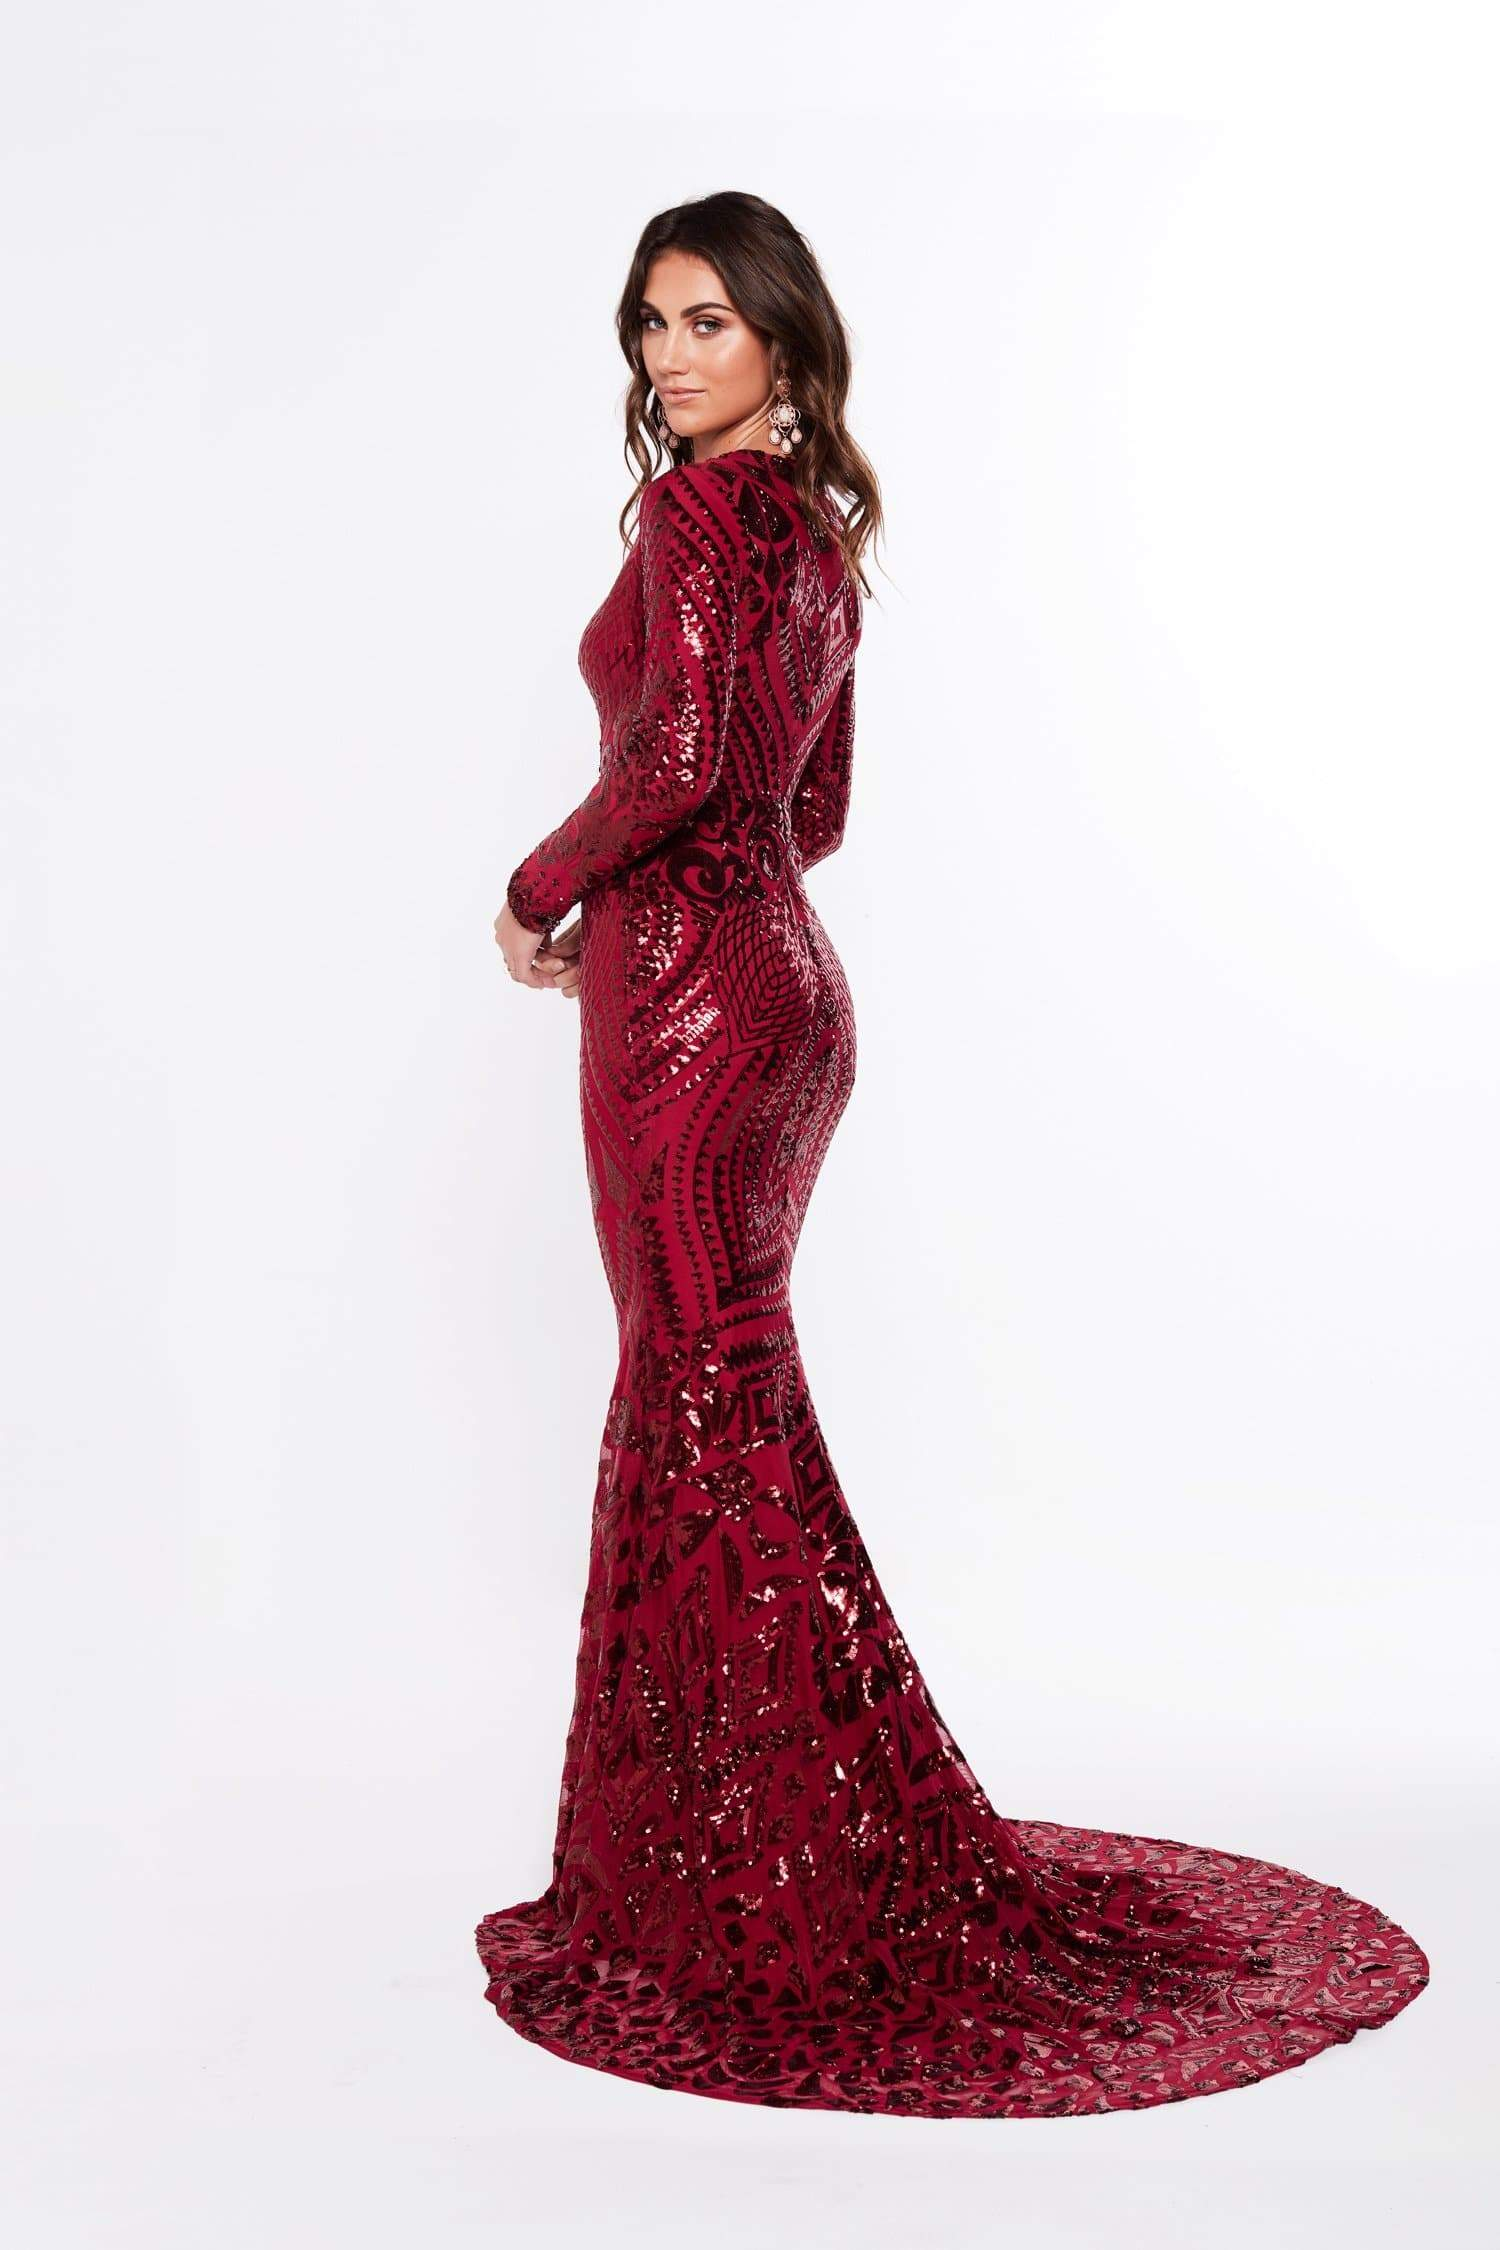 A&N Julieta - Burgundy Sequin Gown with Long Sleeves and V Neckline